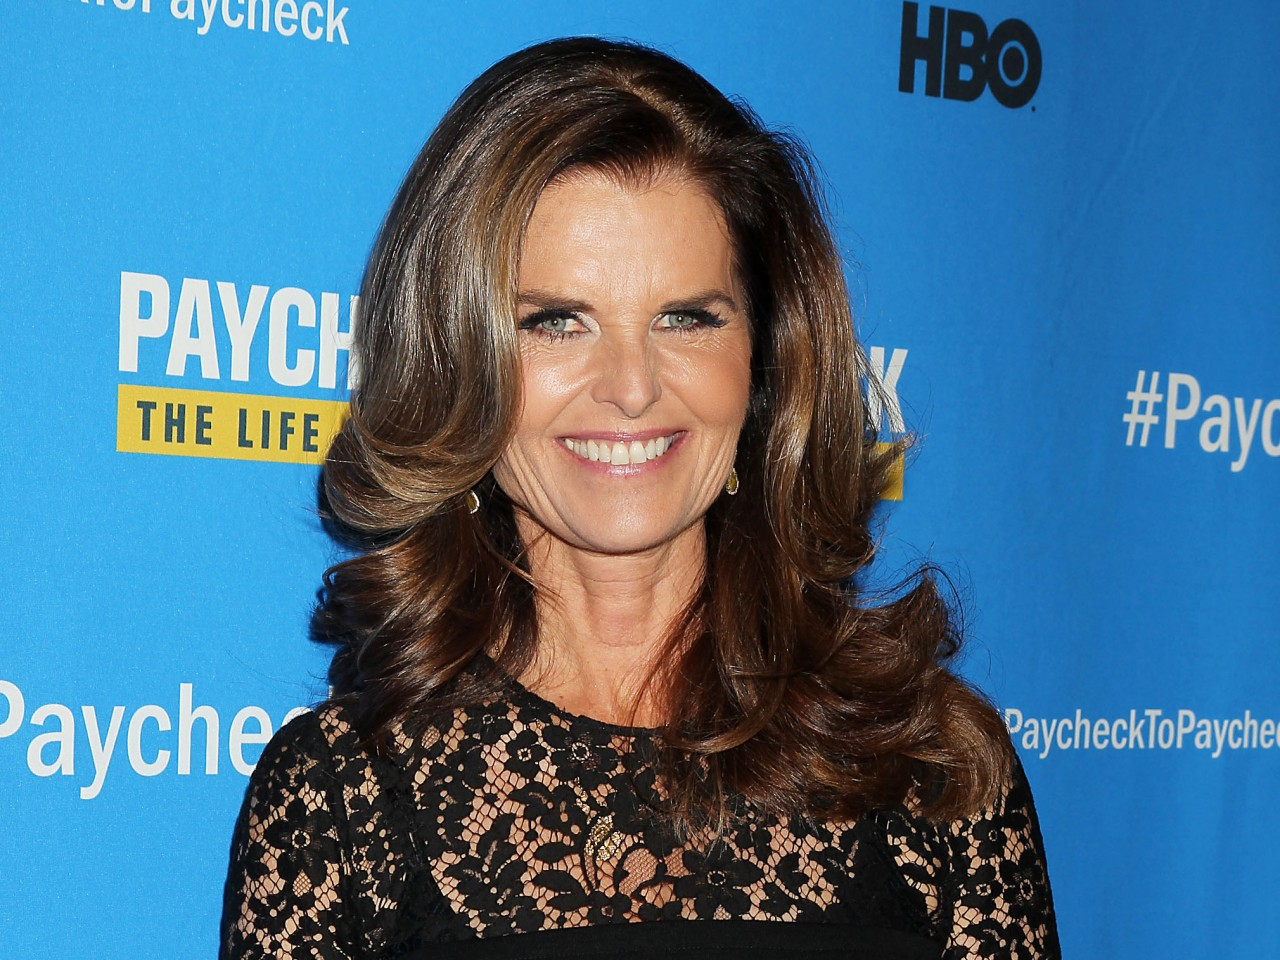 maria shriver presidentmaria shriver young, maria shriver 2013, maria shriver wiki, maria shriver tumblr, maria shriver love, maria shriver college, maria shriver chelsea handler, maria shriver 1980, maria shriver natal chart, maria shriver dad, maria shriver 1990, maria shriver twitter, maria shriver imdb, maria shriver 1986, maria shriver oprah, maria shriver youtube, maria shriver president, maria shriver born, maria shriver wedding, maria shriver net worth